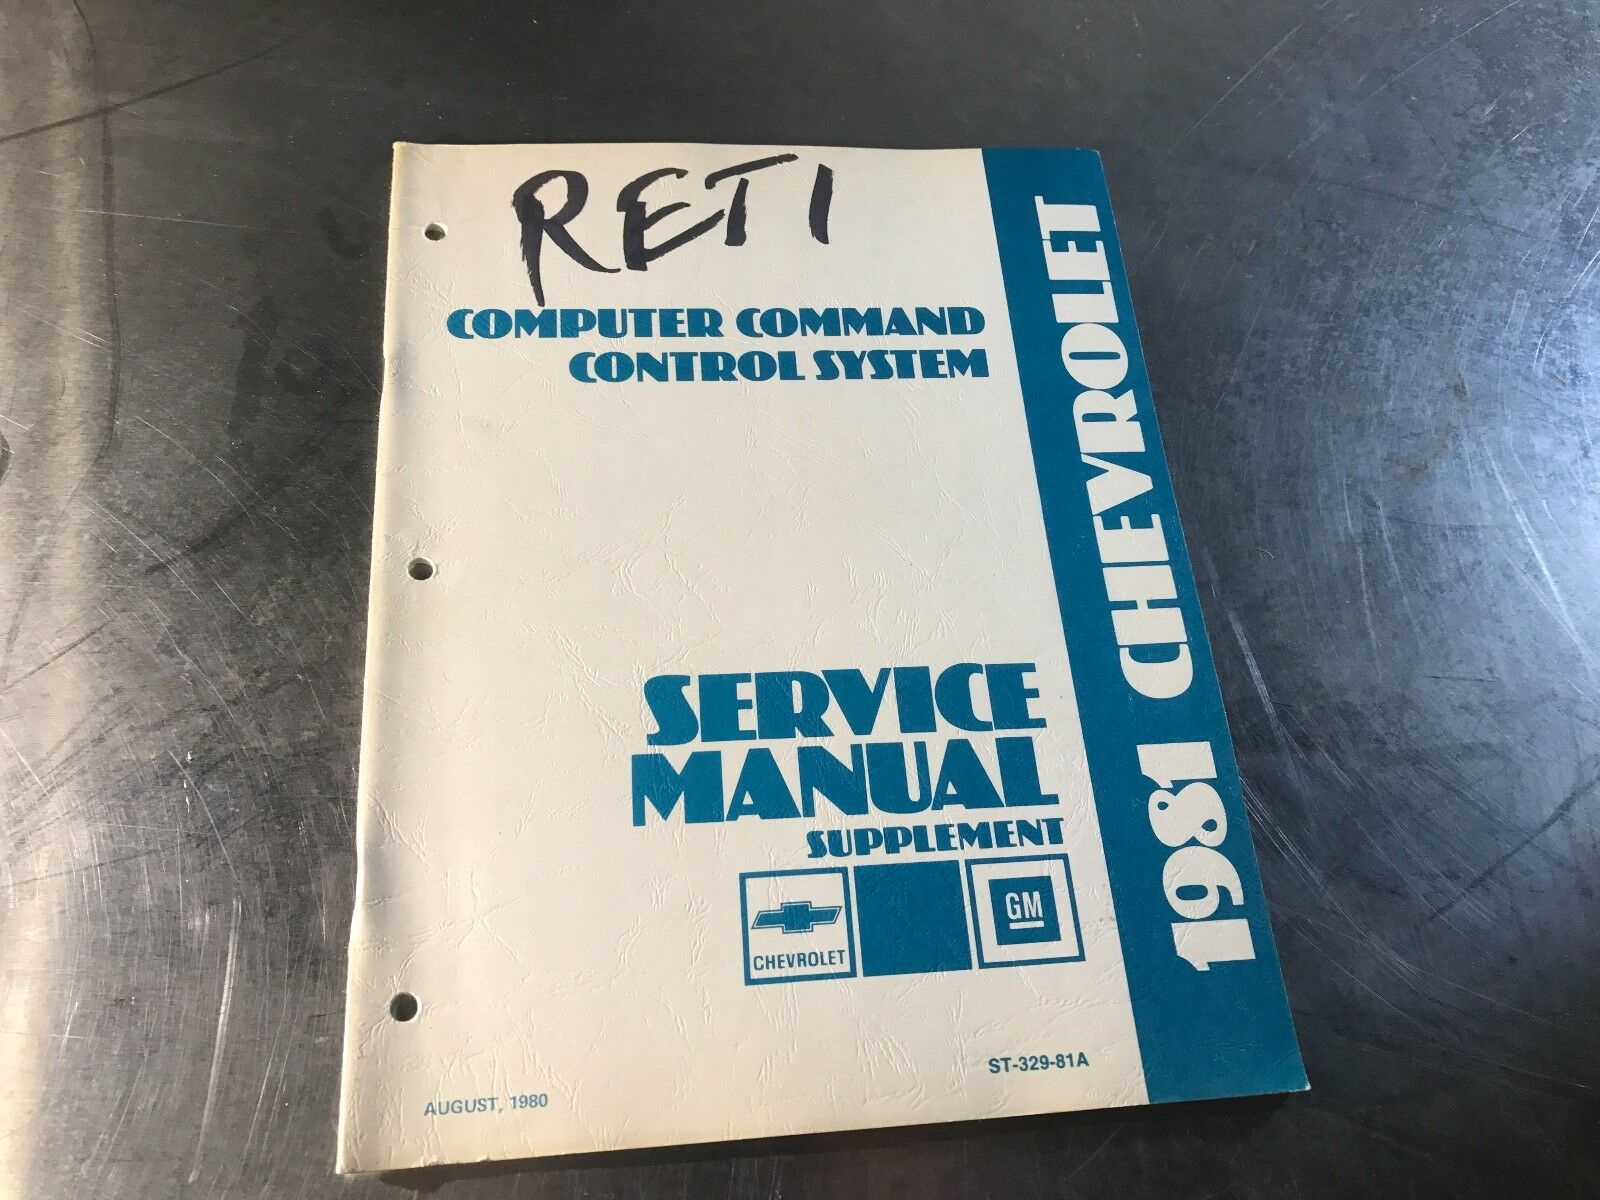 Chevrolet 1981 Computer Command Control Original Shop Service Manual Supplemen